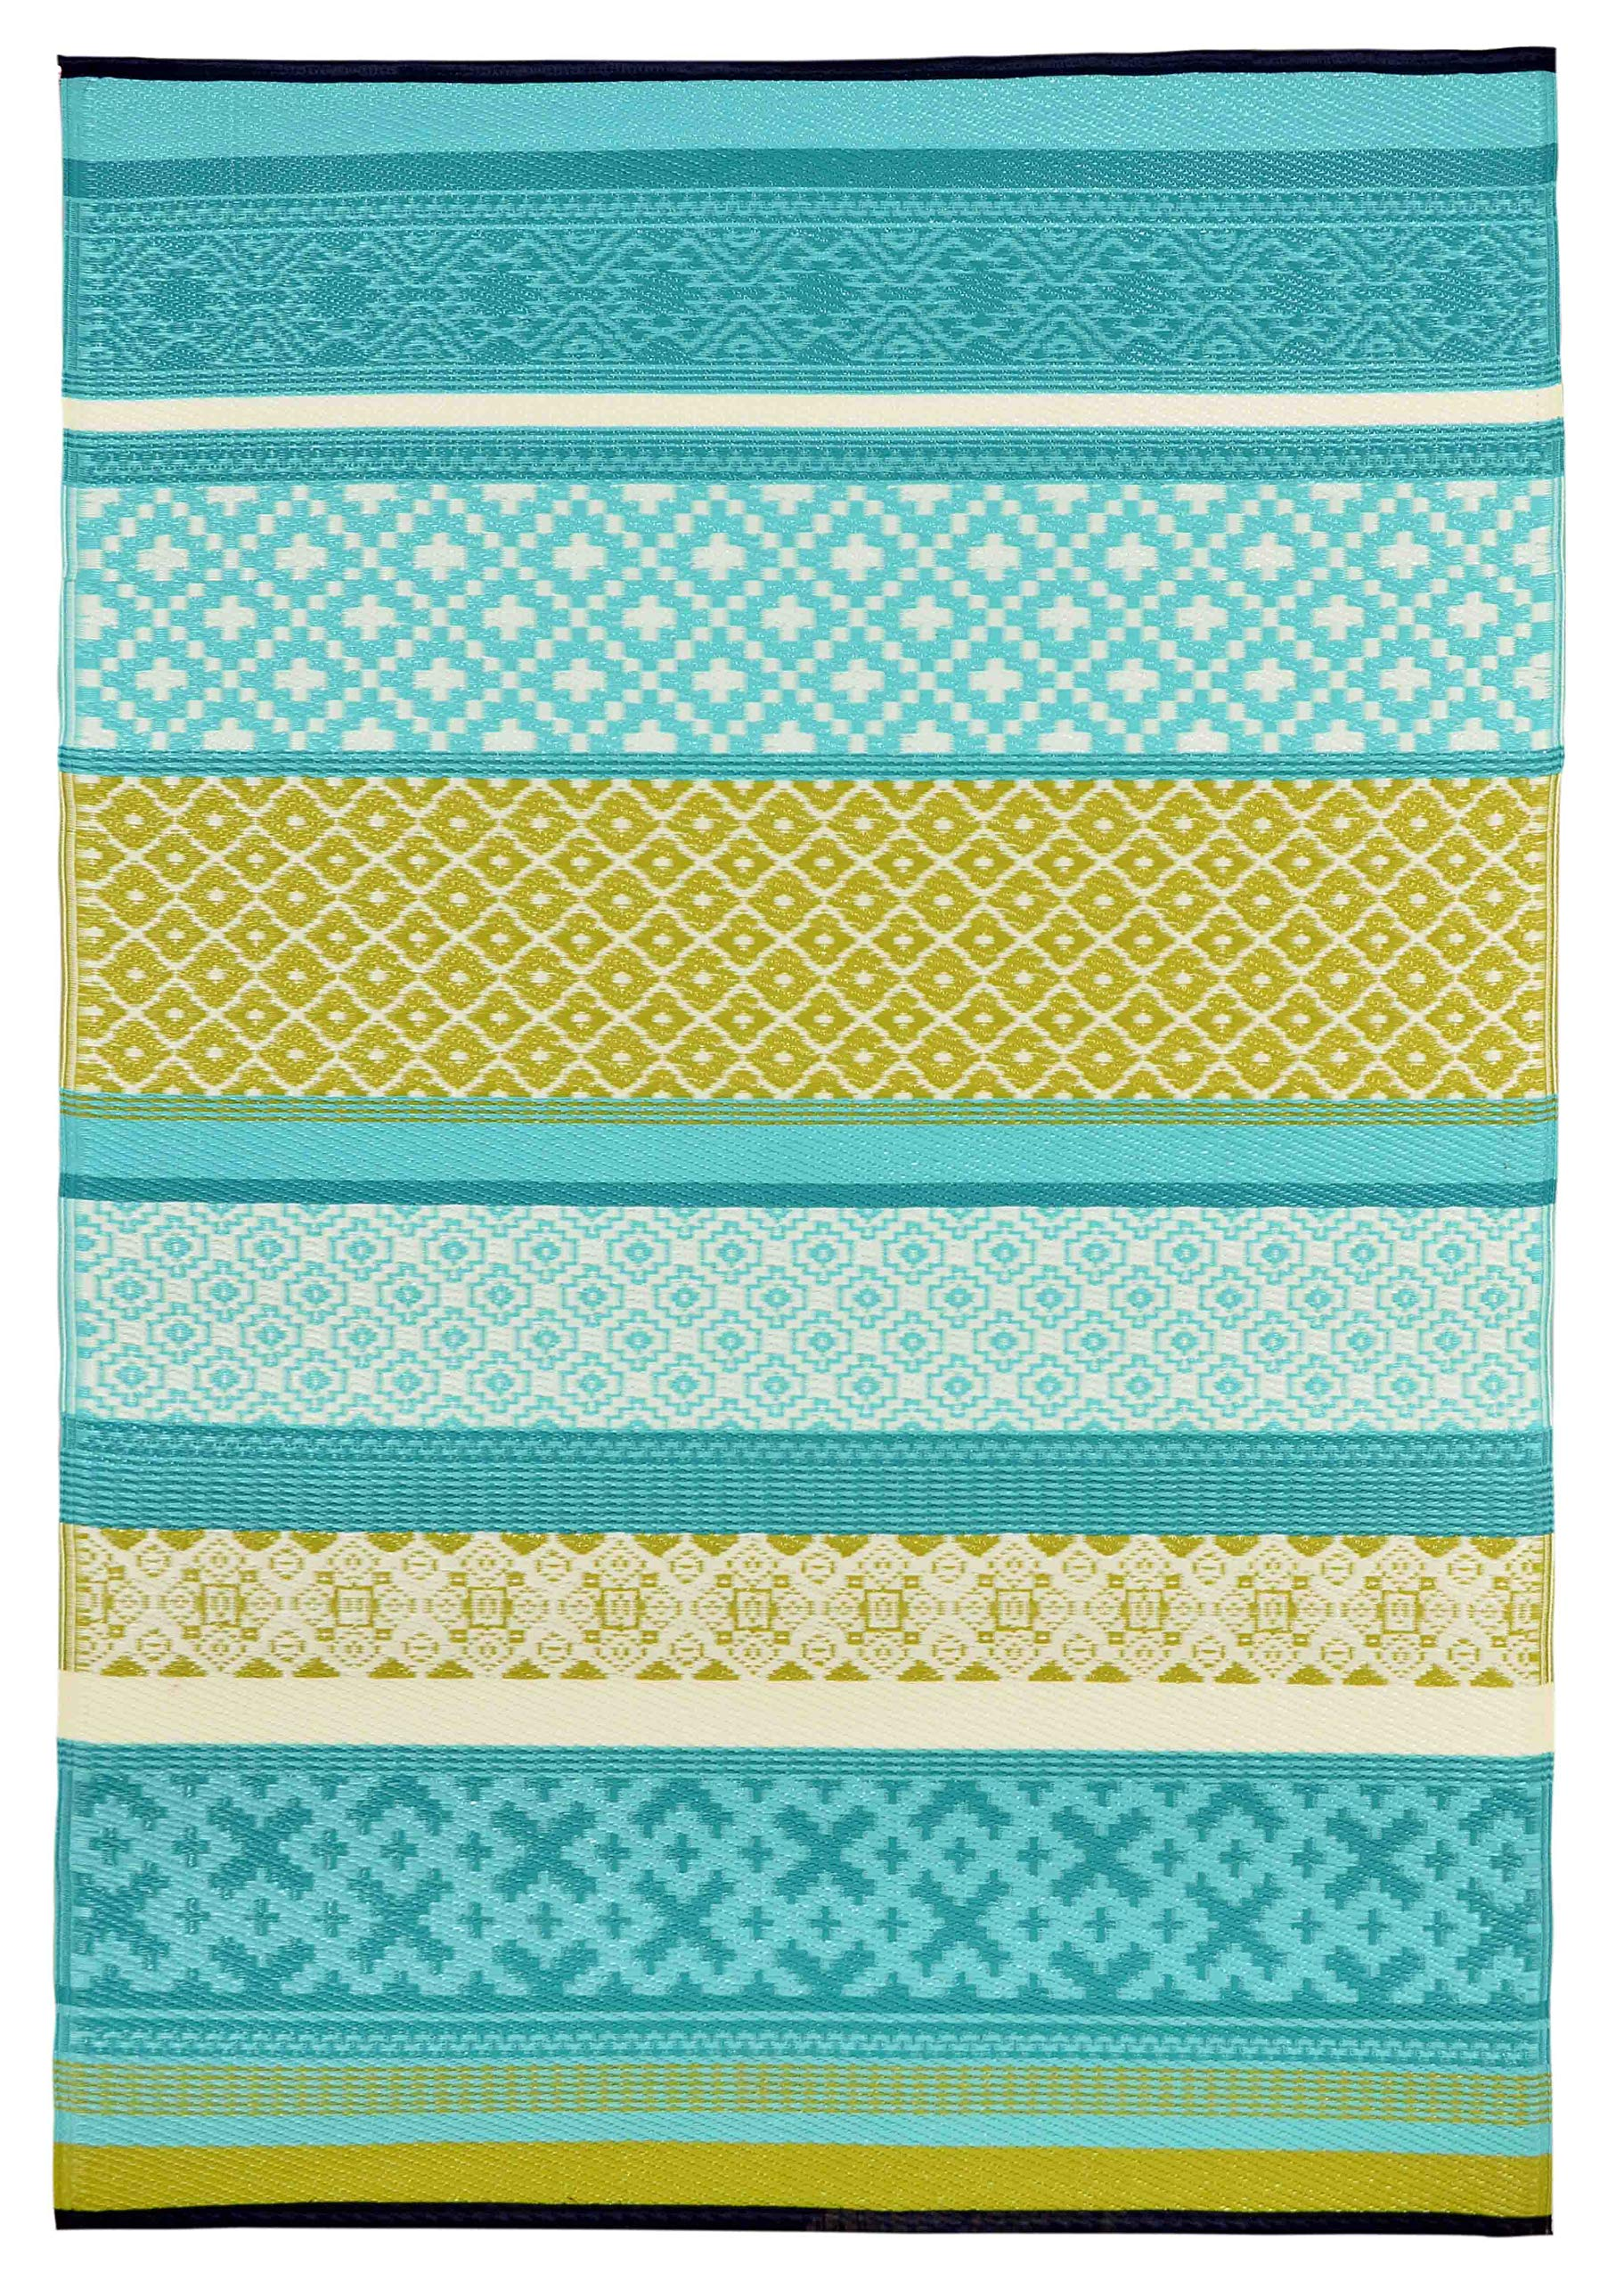 Lightweight Outdoor Reversible Durable Plastic Rug (4x6, Prime Turquoise/Green)